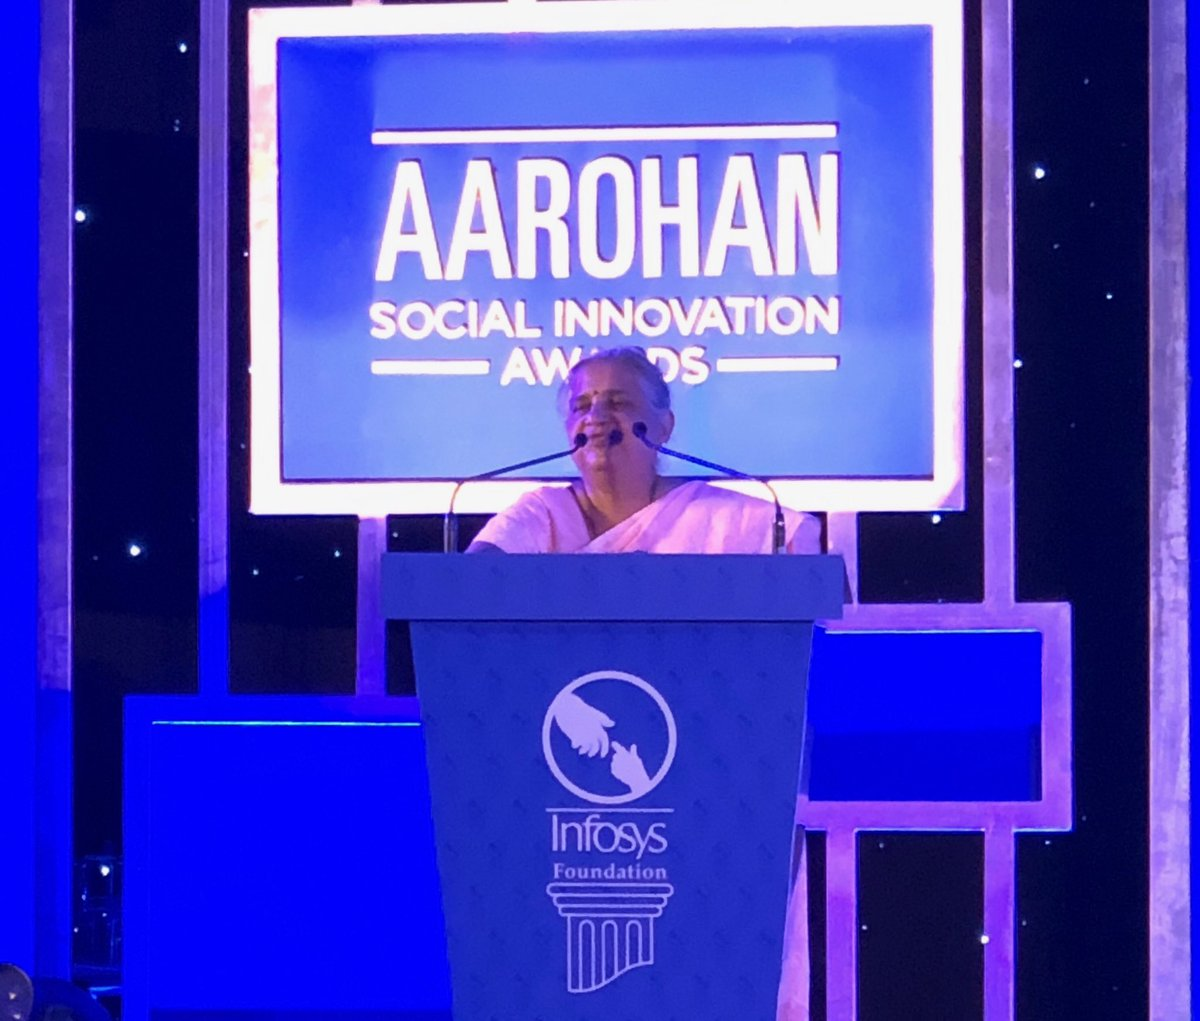 Mrs. Sudha Murty, Chairperson, sharing the story of institutionalising the #Aarohan #SocialInnovation awards during the awards ceremony today.